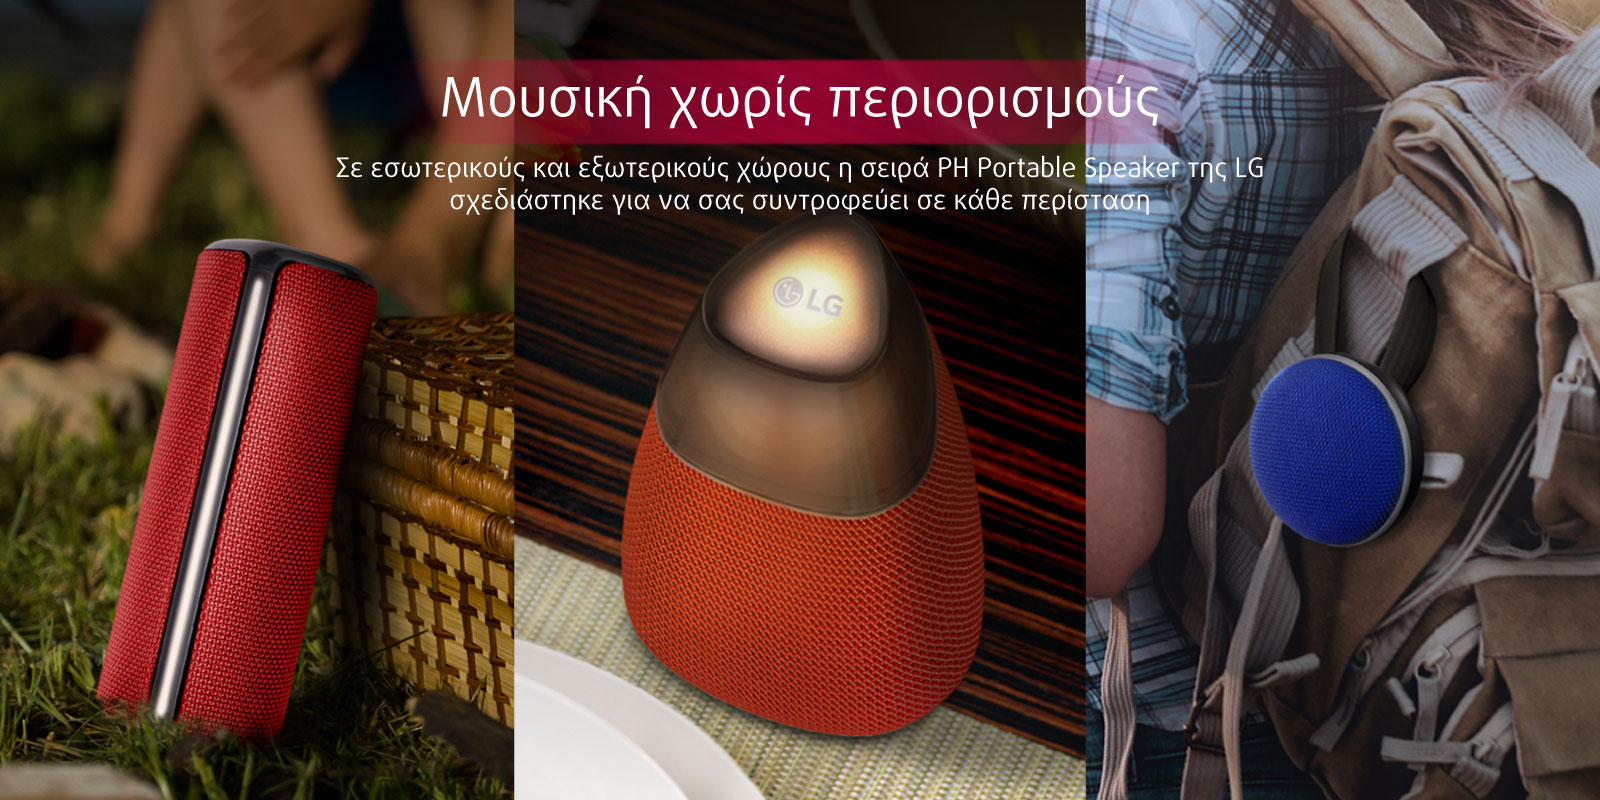 LG PH Portable Speaker